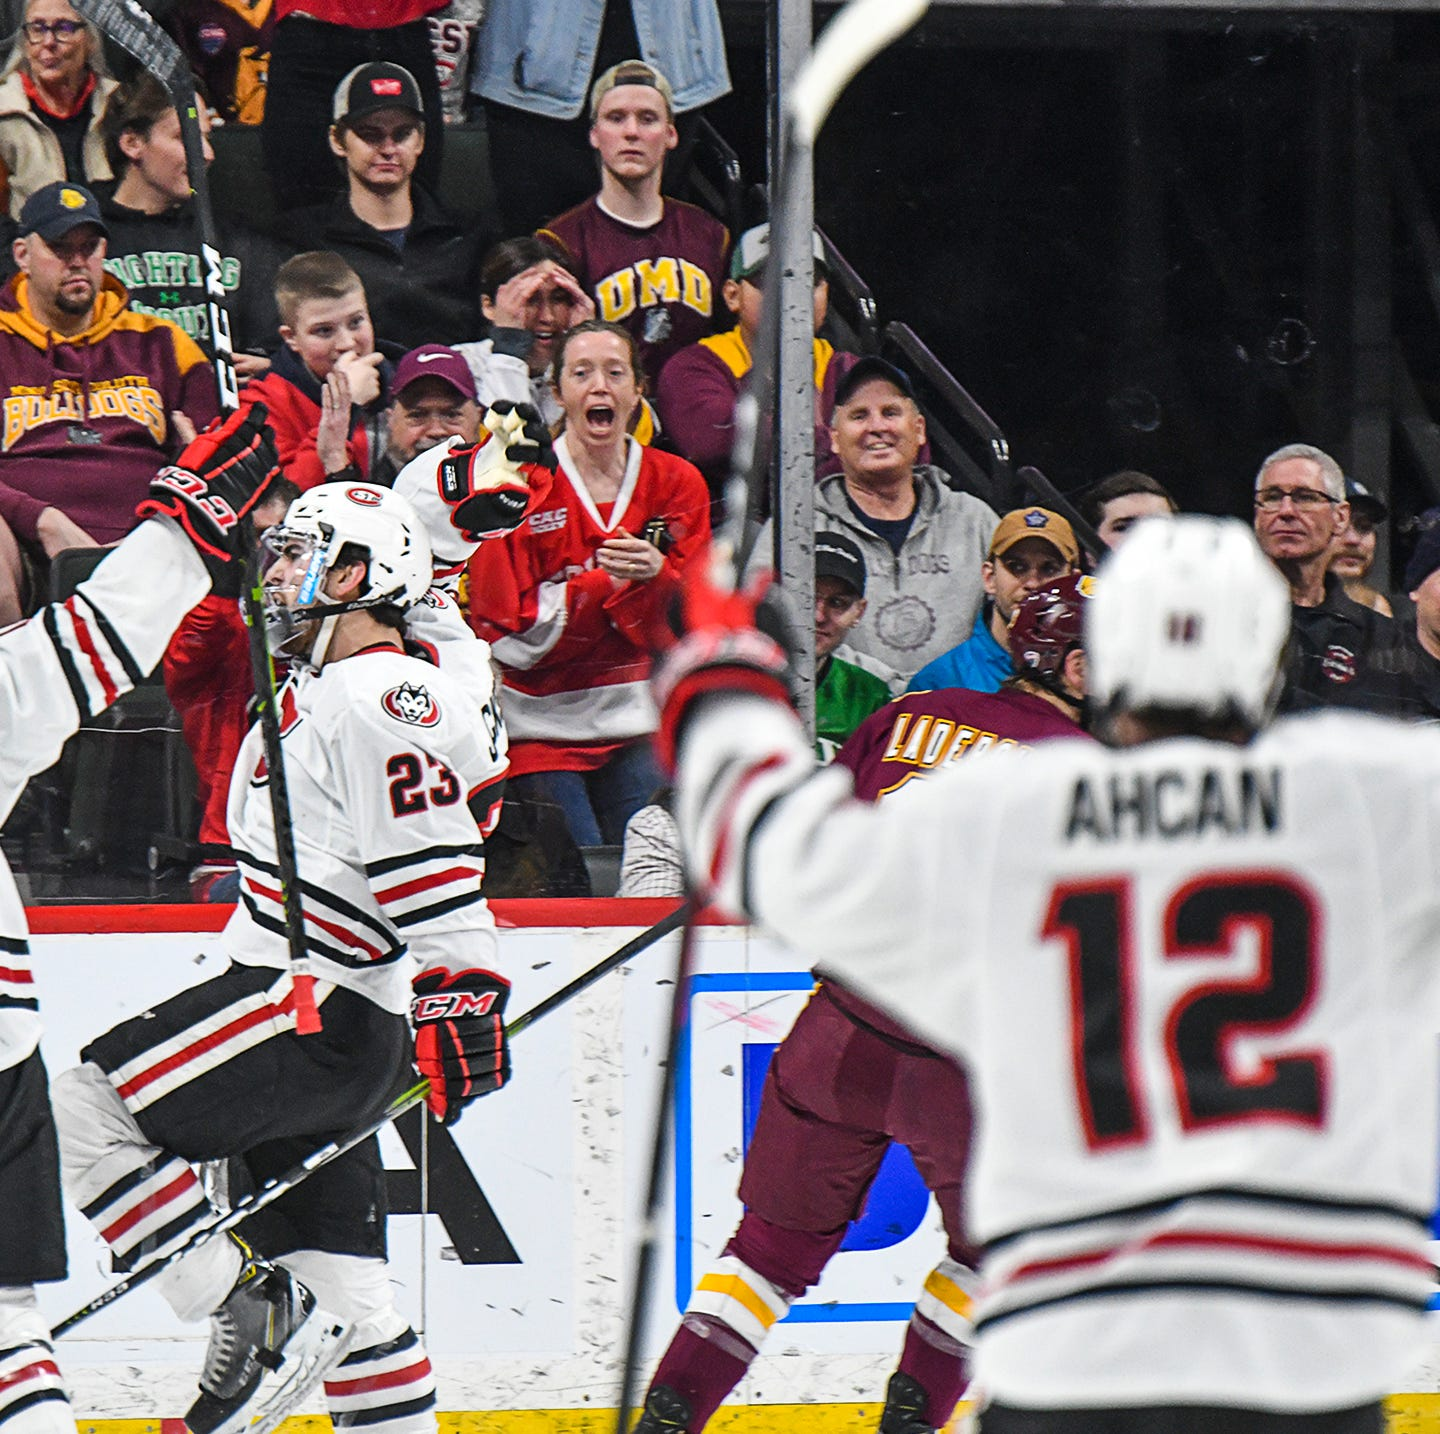 SCSU and UMD battle into the night in Frozen Faceoff final